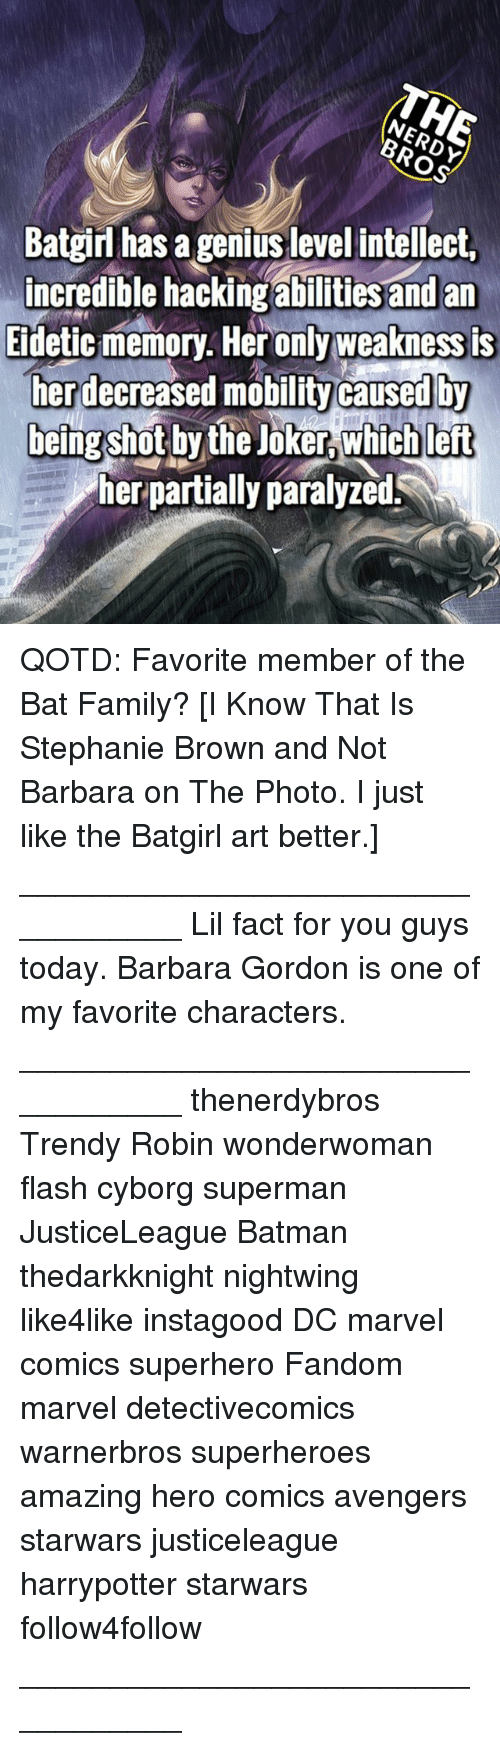 Batman, Family, and Joker: Batgirl has a genius level intellect,  incredible hacking  abilities and an  Eidetic memory. Her only weakness is  herdecreased mobility caused by  being shot by the Joker which left  her partially paralyzed. QOTD: Favorite member of the Bat Family? [I Know That Is Stephanie Brown and Not Barbara on The Photo. I just like the Batgirl art better.] __________________________________ Lil fact for you guys today. Barbara Gordon is one of my favorite characters. __________________________________ thenerdybros Trendy Robin wonderwoman flash cyborg superman JusticeLeague Batman thedarkknight nightwing like4like instagood DC marvel comics superhero Fandom marvel detectivecomics warnerbros superheroes amazing hero comics avengers starwars justiceleague harrypotter starwars follow4follow __________________________________